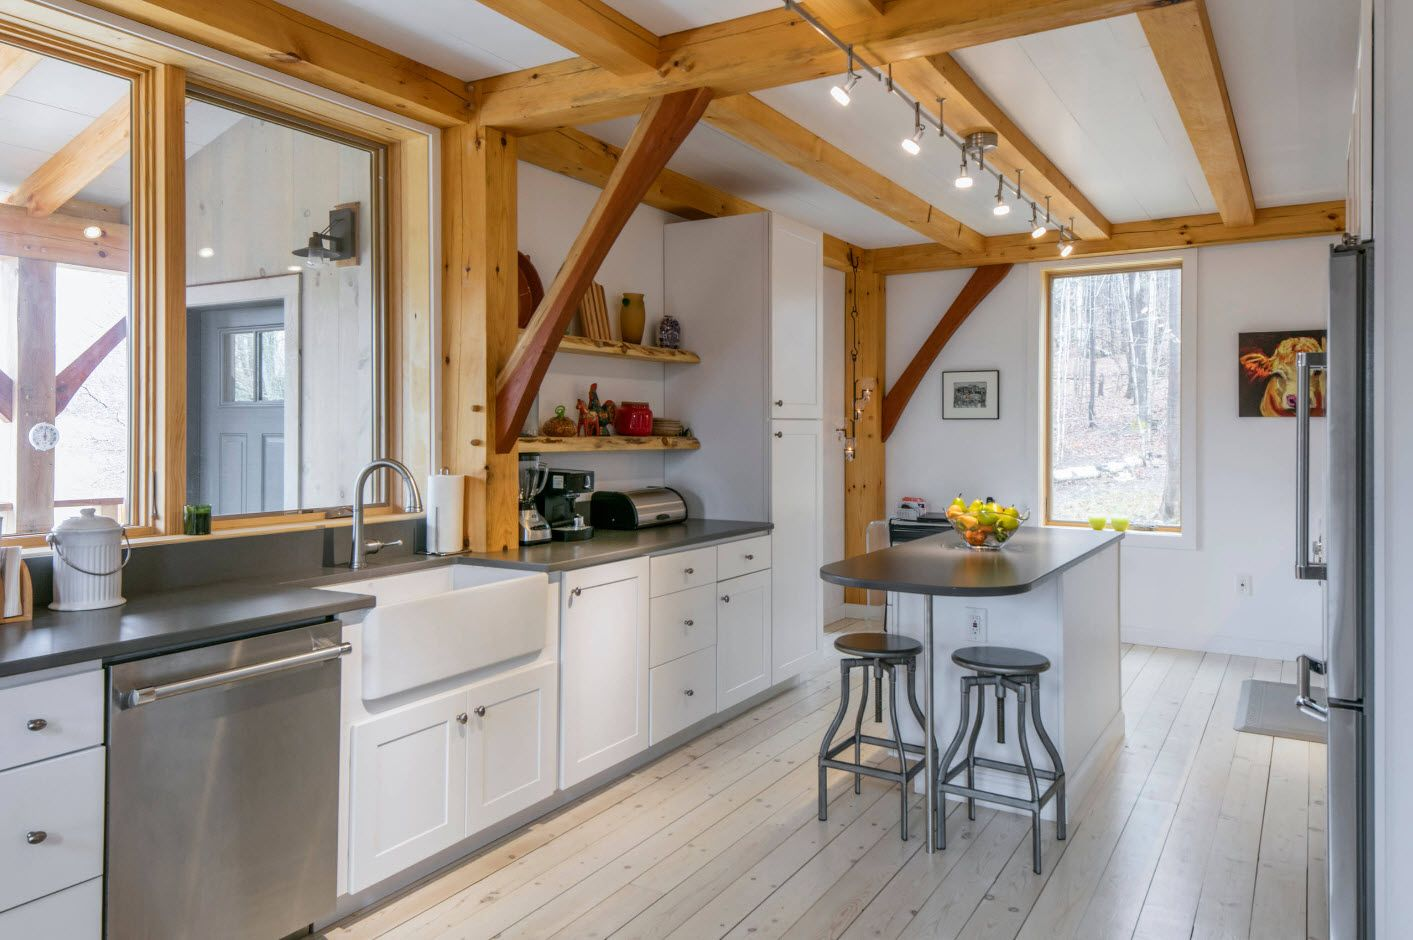 Modern Cottage Interior Design Tips. Trends and Features 2017. Wooden beams and frames at the spectacular Loft and Scandinavian style in the spacious kitchen